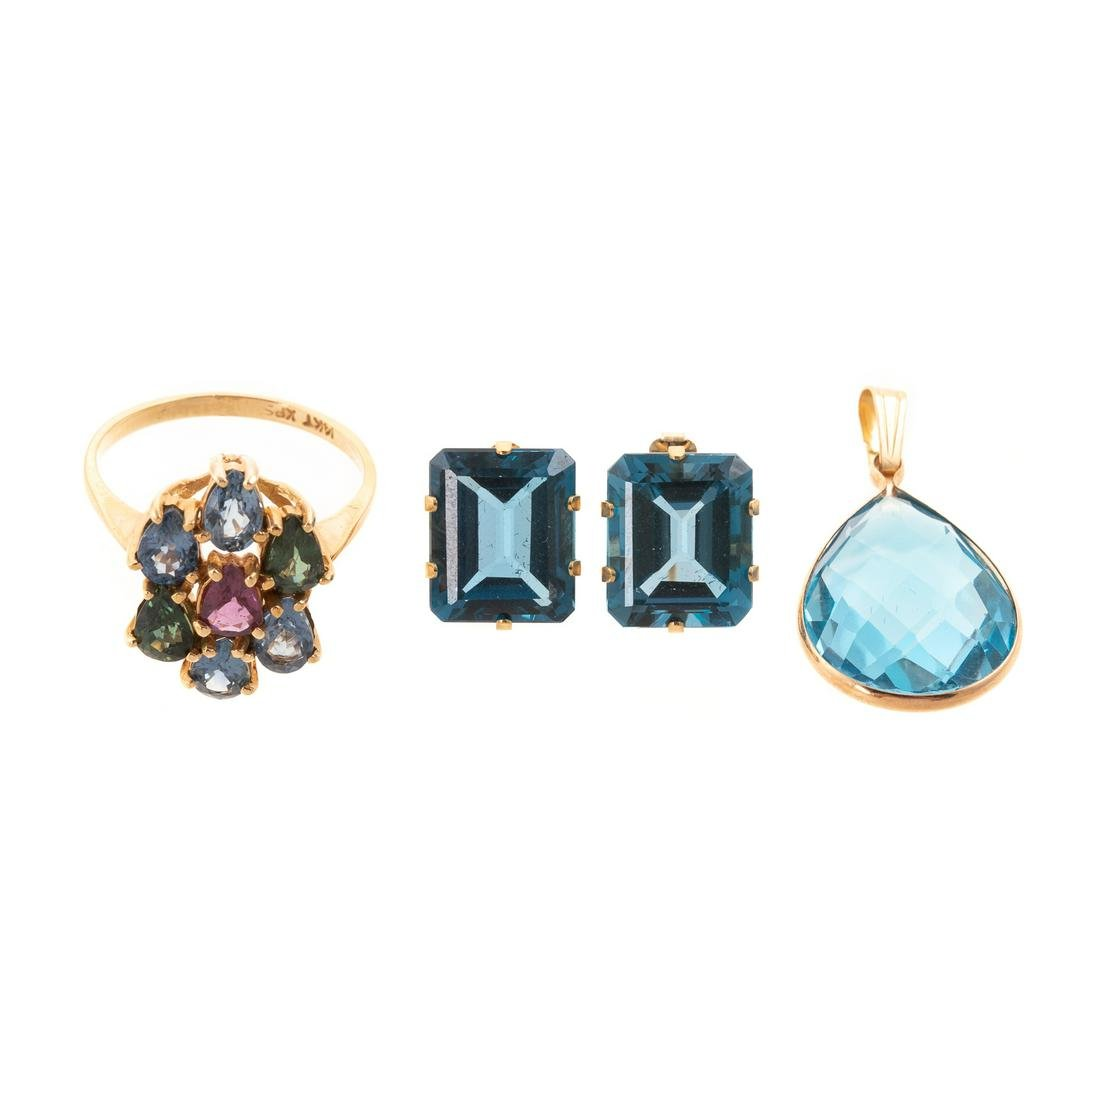 A Collection of Blue Topaz Jewelry in Gold